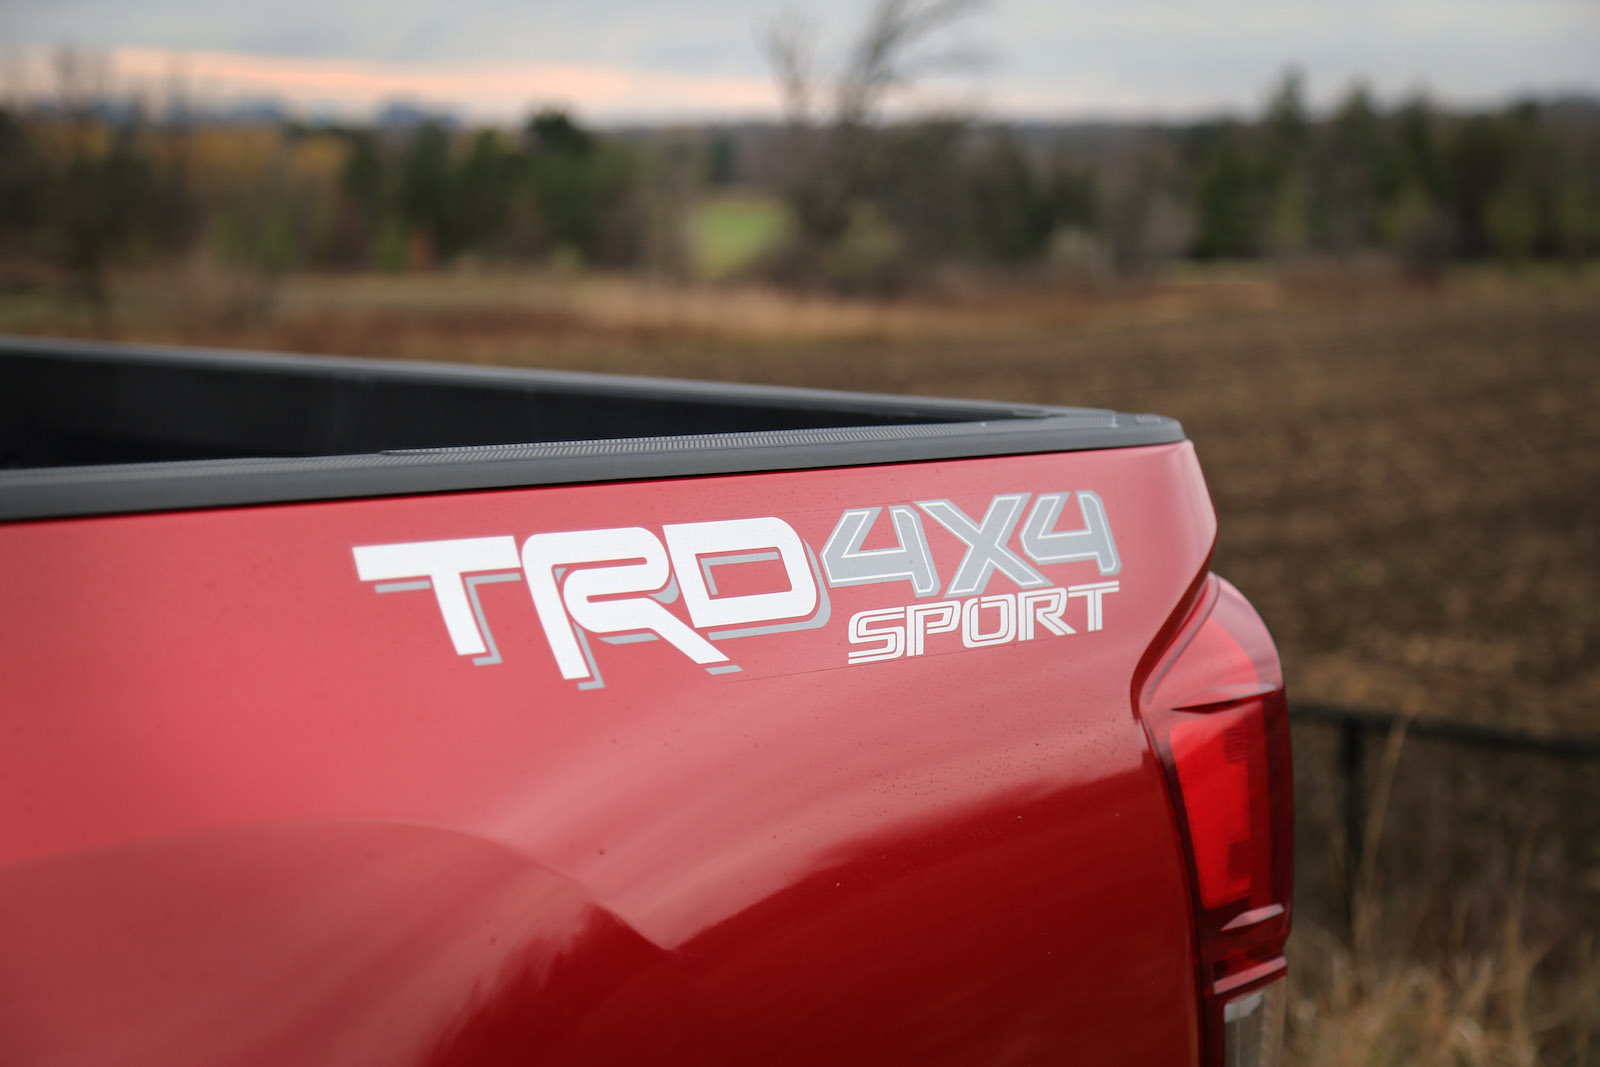 2 side Toyota TRD Truck SPORT 4x4 Toyota Racing Tacoma Decal Vinyl Sticker#3